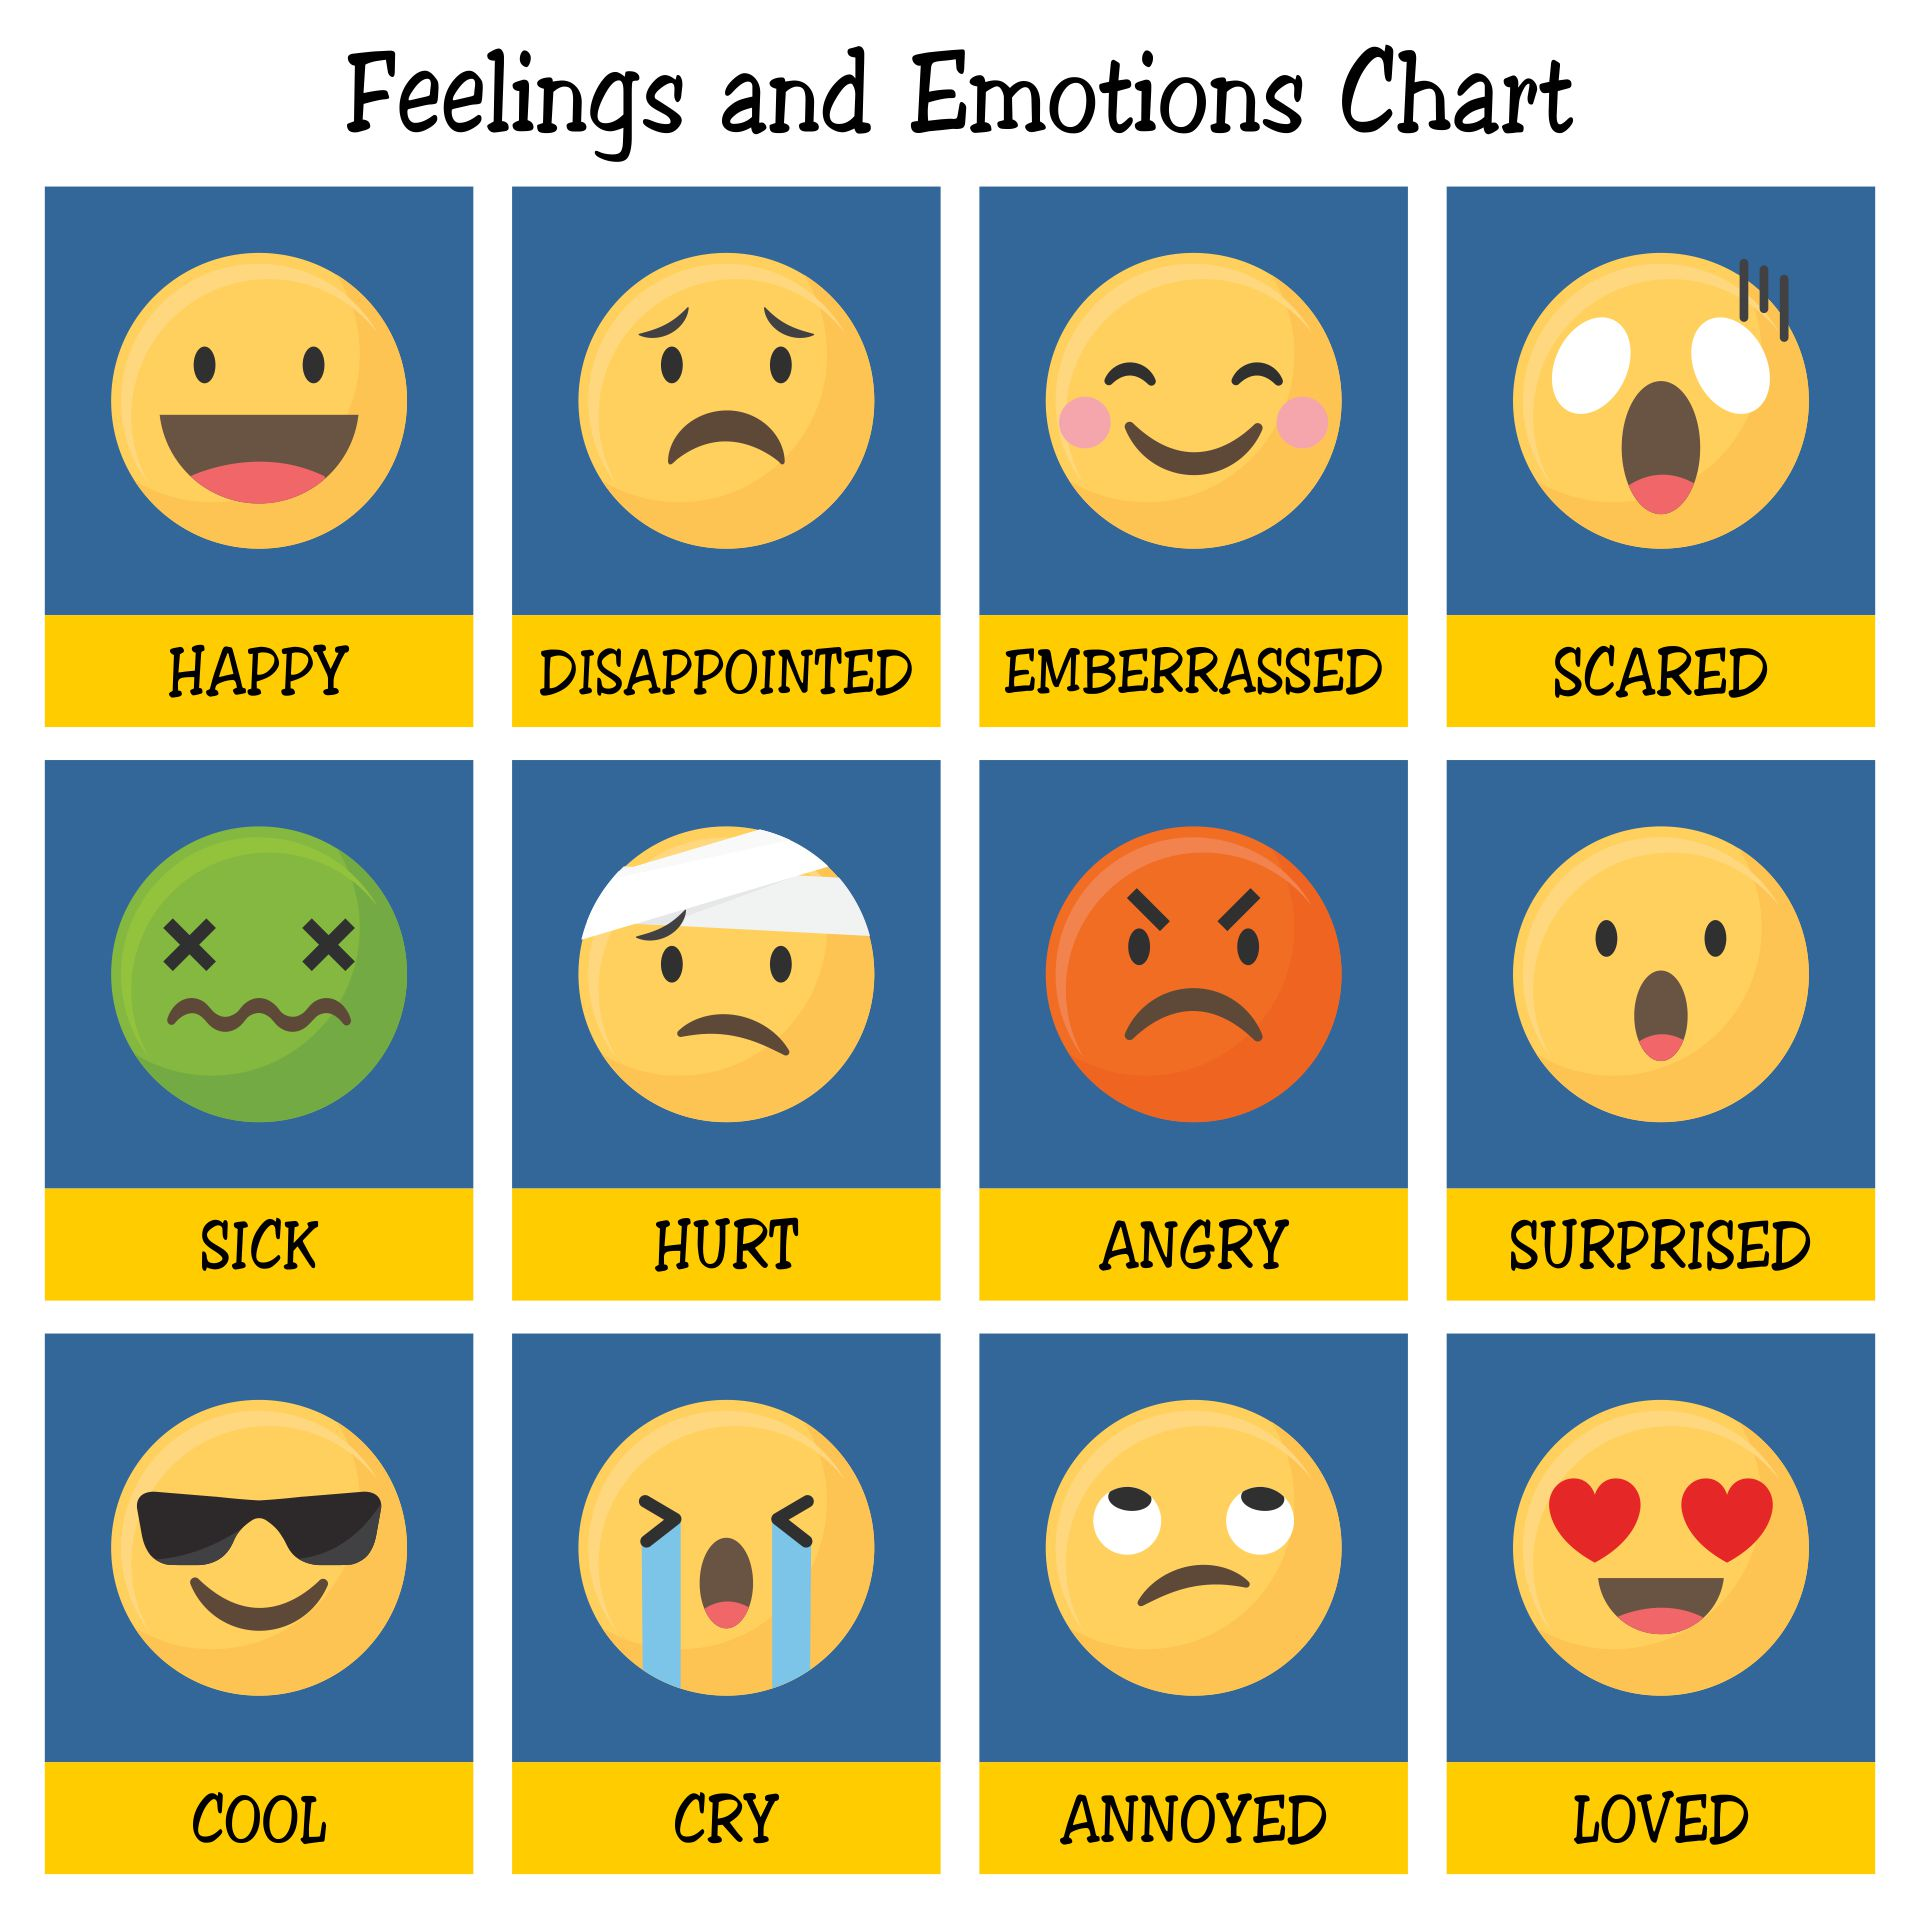 Feelings and Emotions Chart